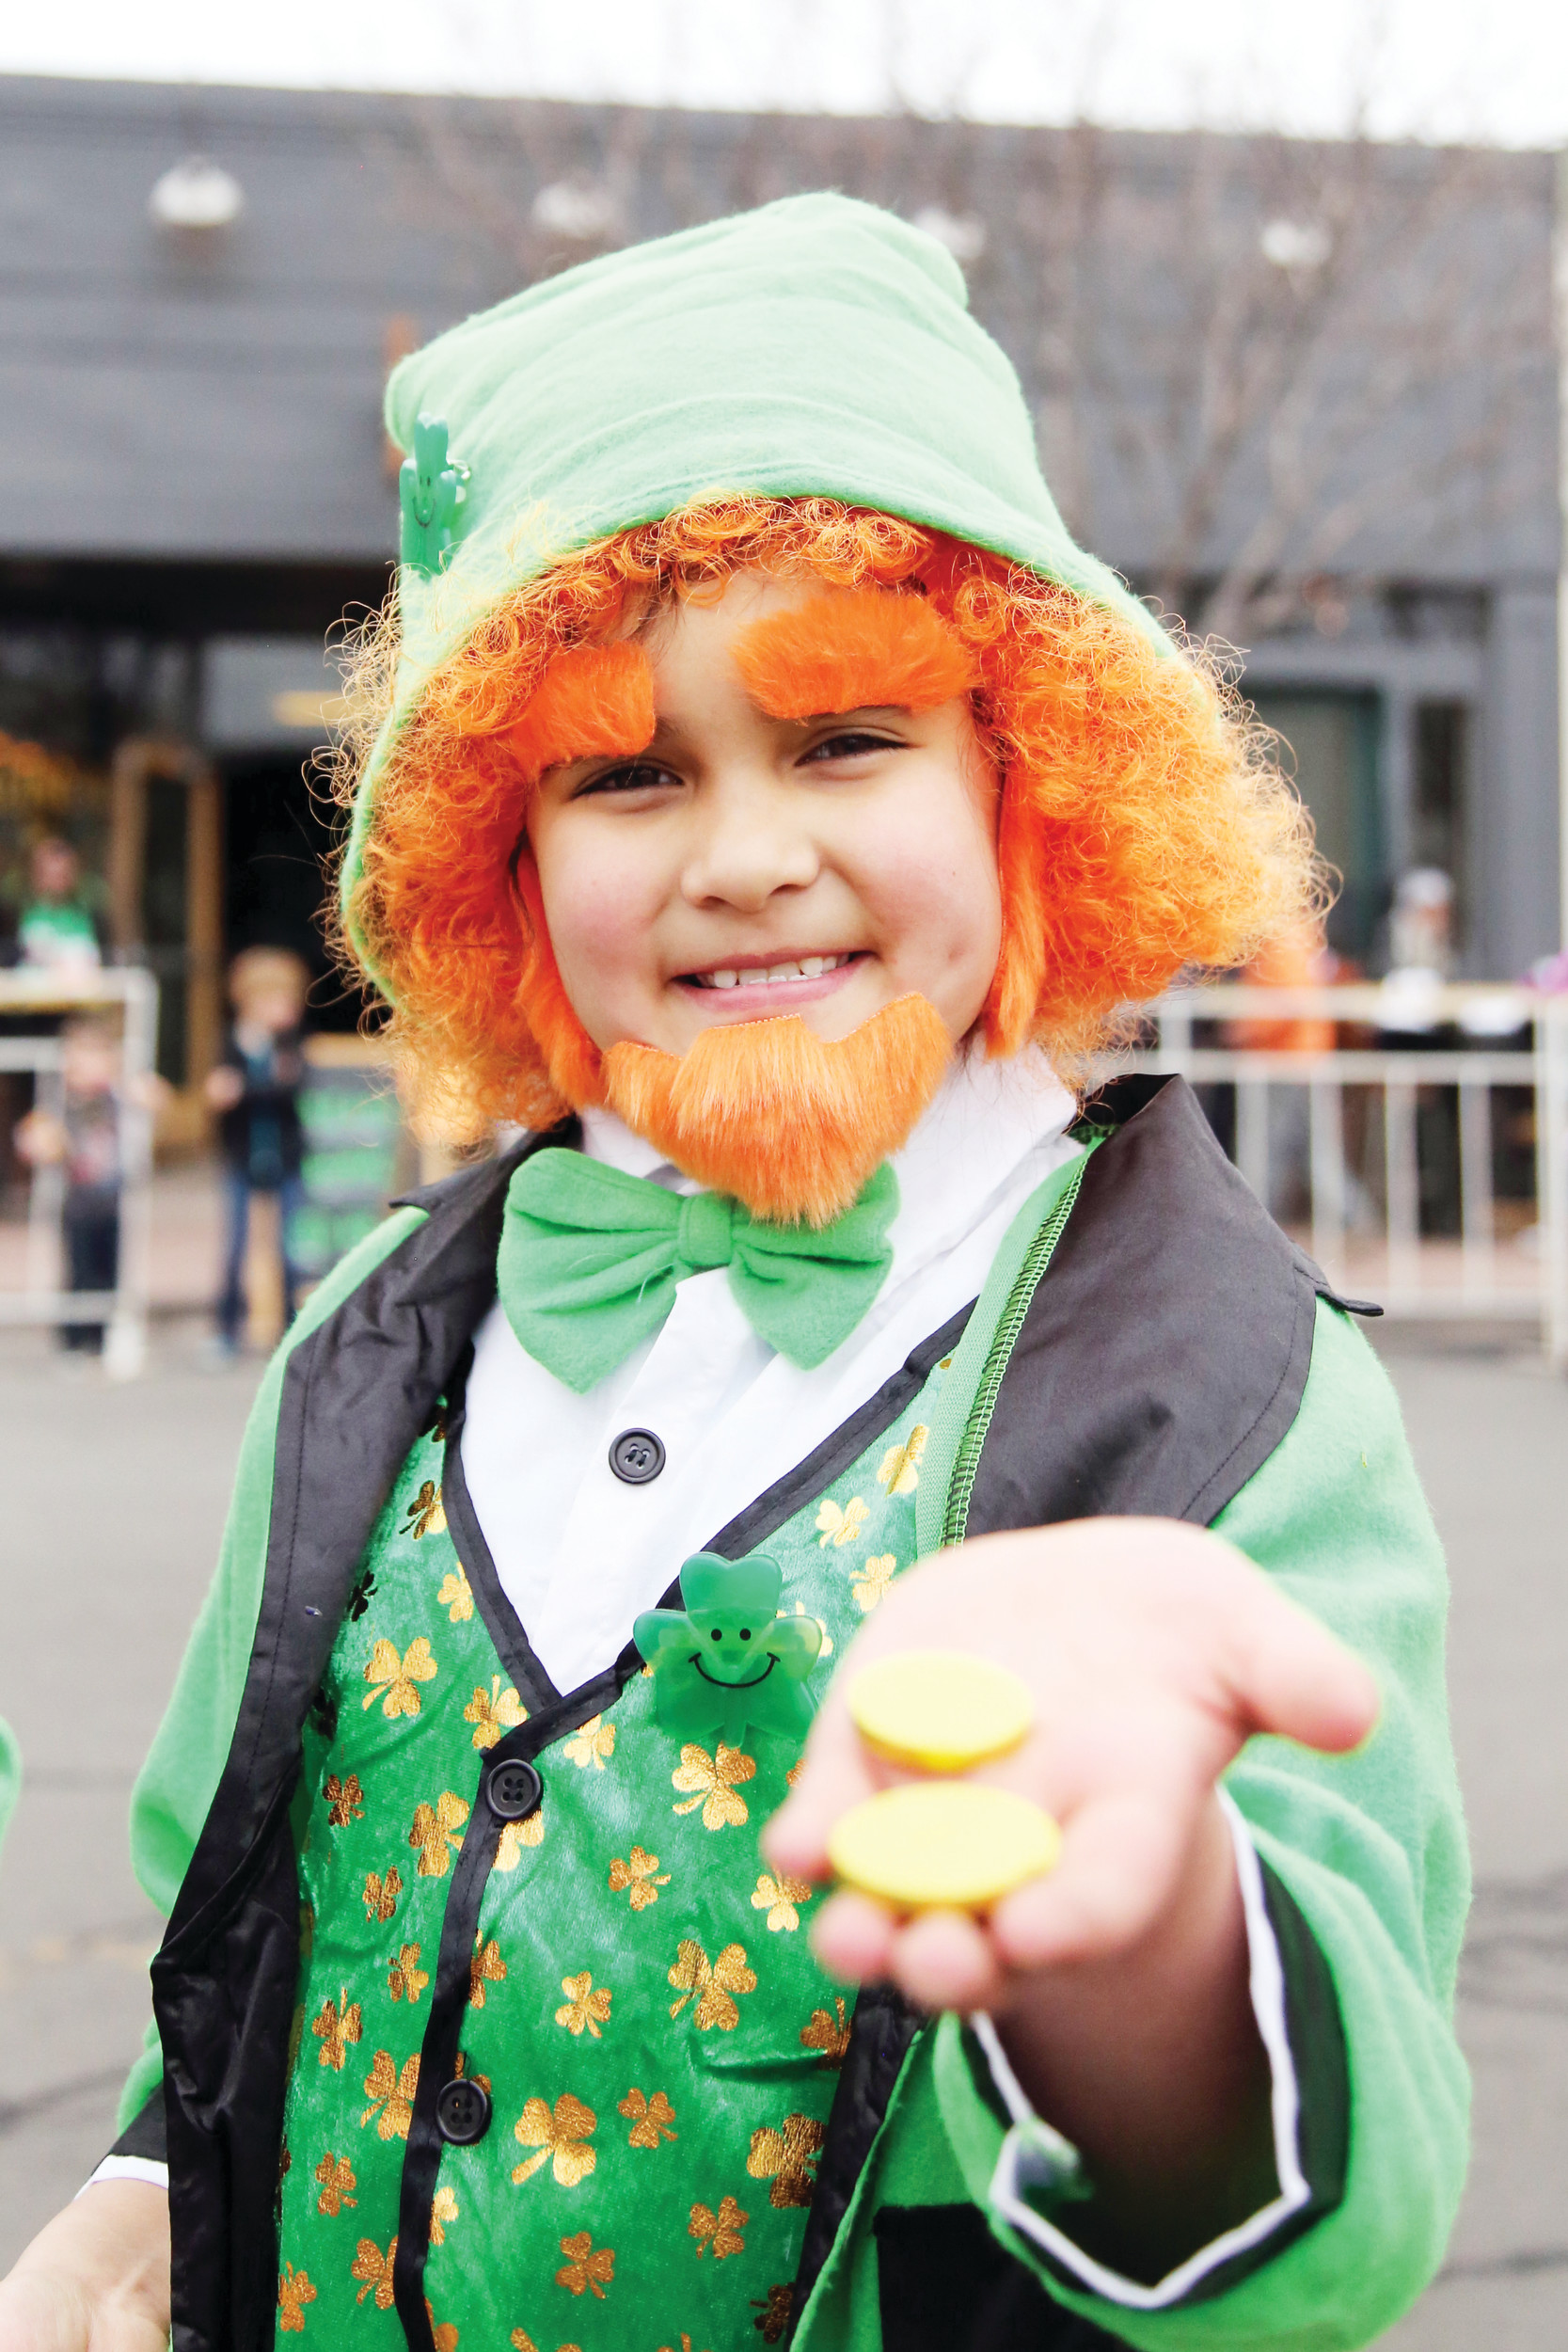 Eva Torres, 10, dressed an a leprechaun and gave out gold coins during the St. Patrick's Day Festival.